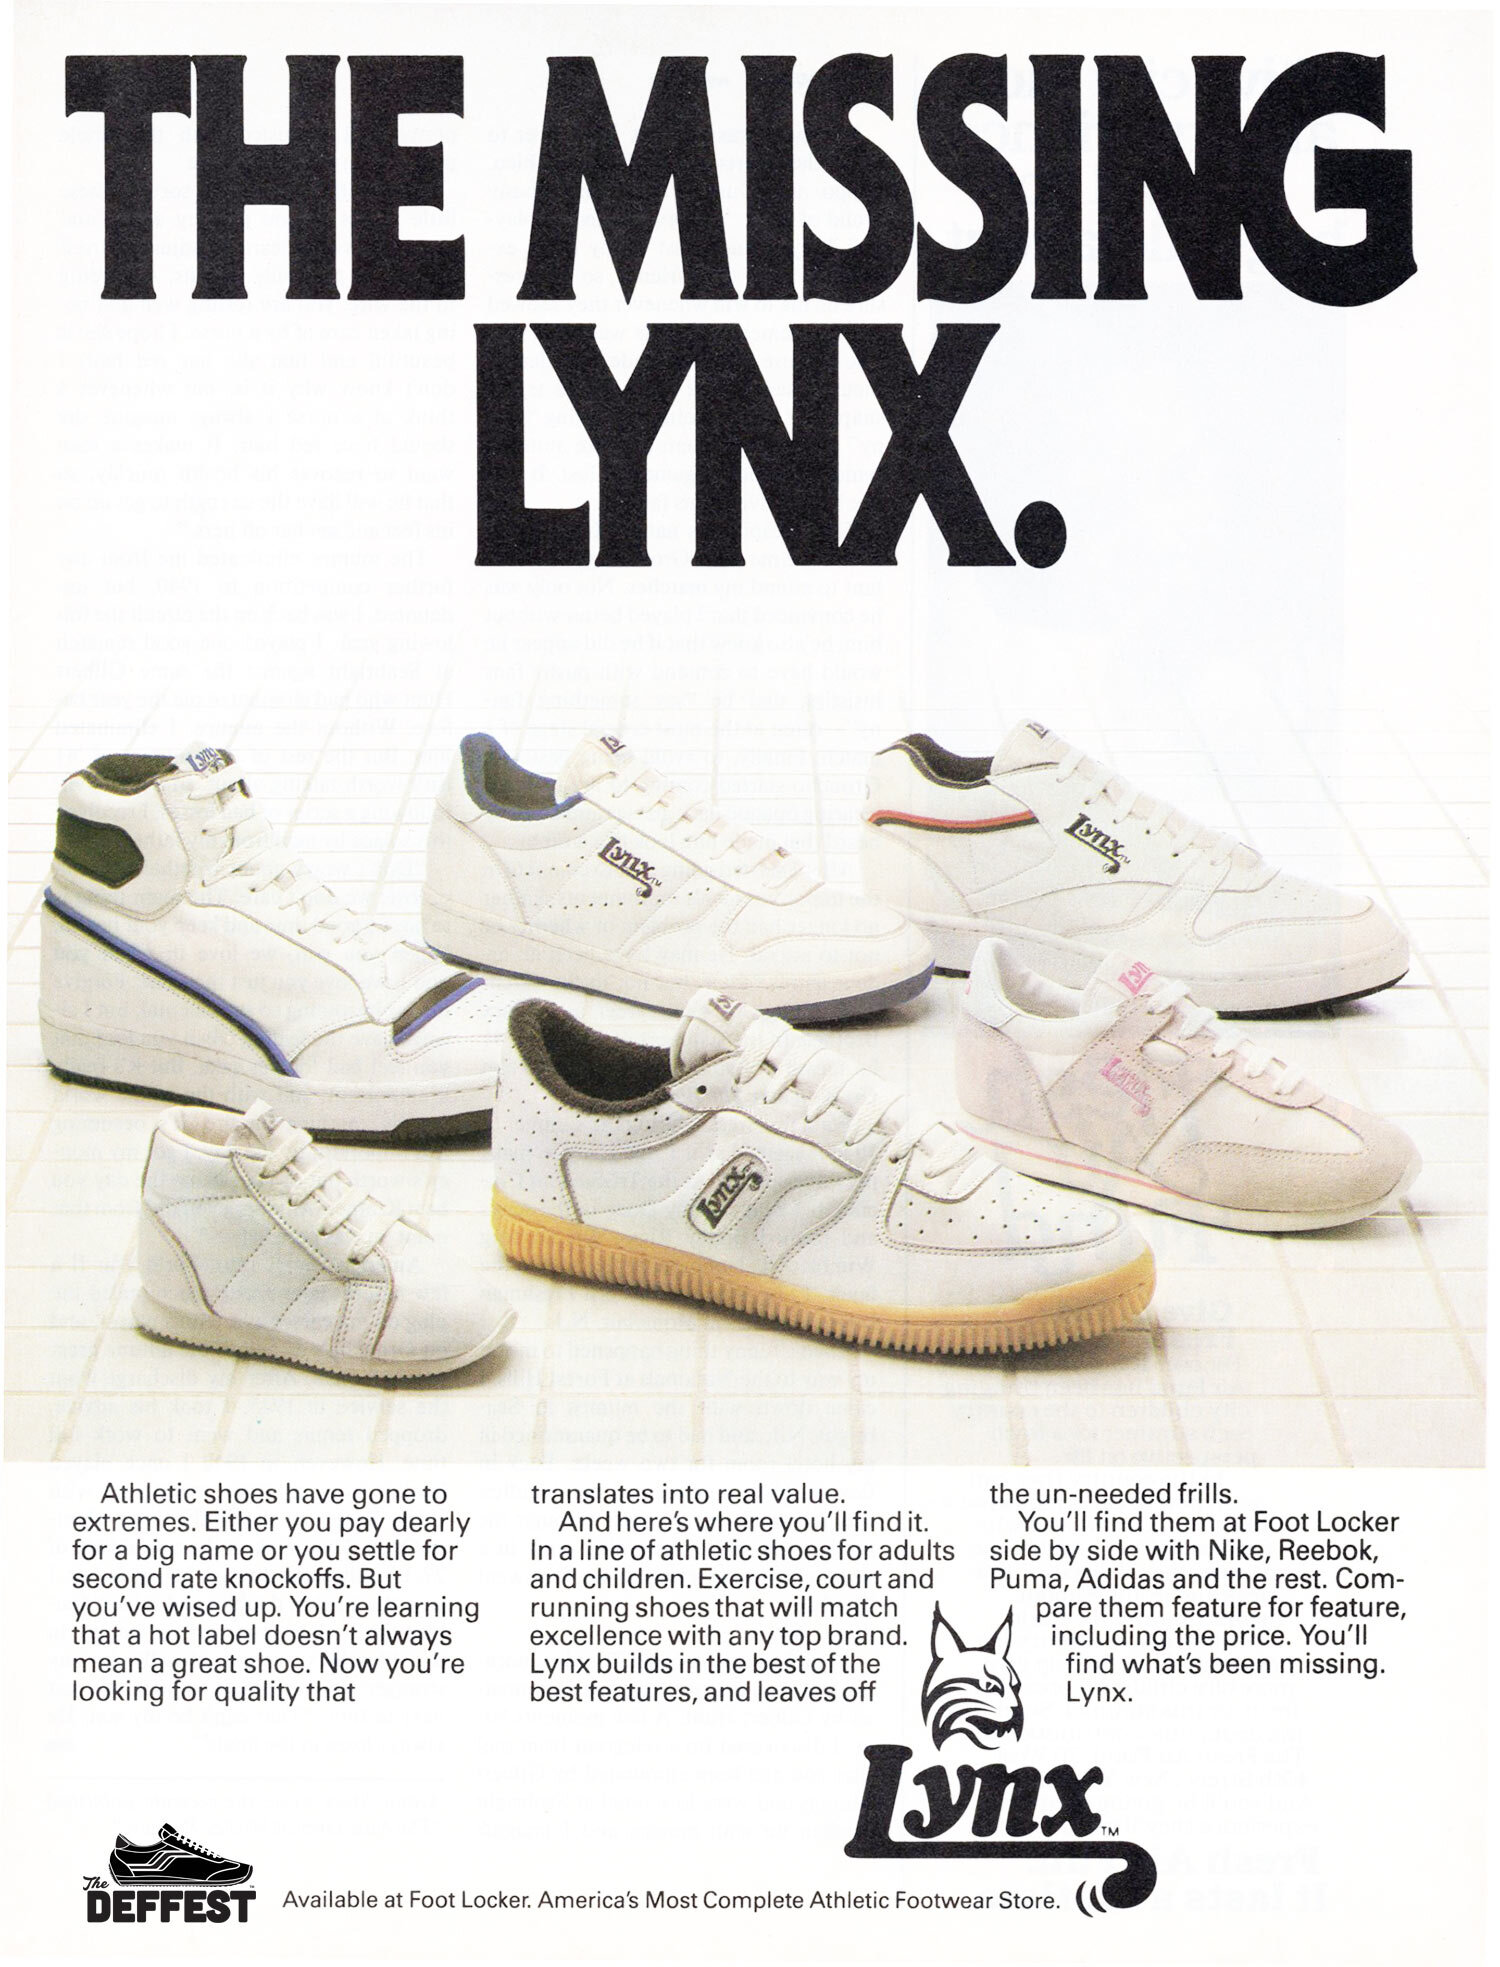 80s Running Shoes The Deffest A Vintage And Retro Sneaker Blog Vintage Ads